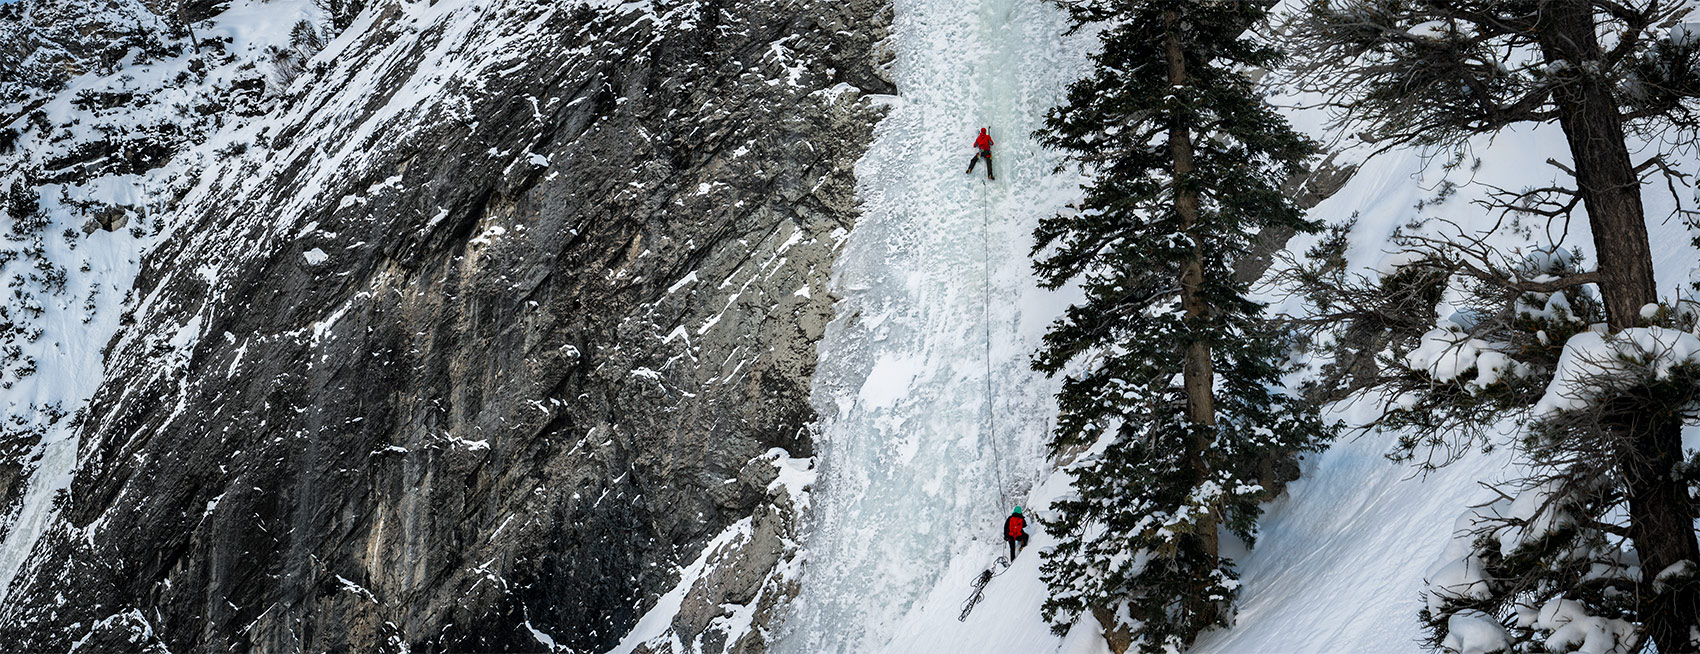 Lane_Peters_Multimedia_ice-climbing.jpg